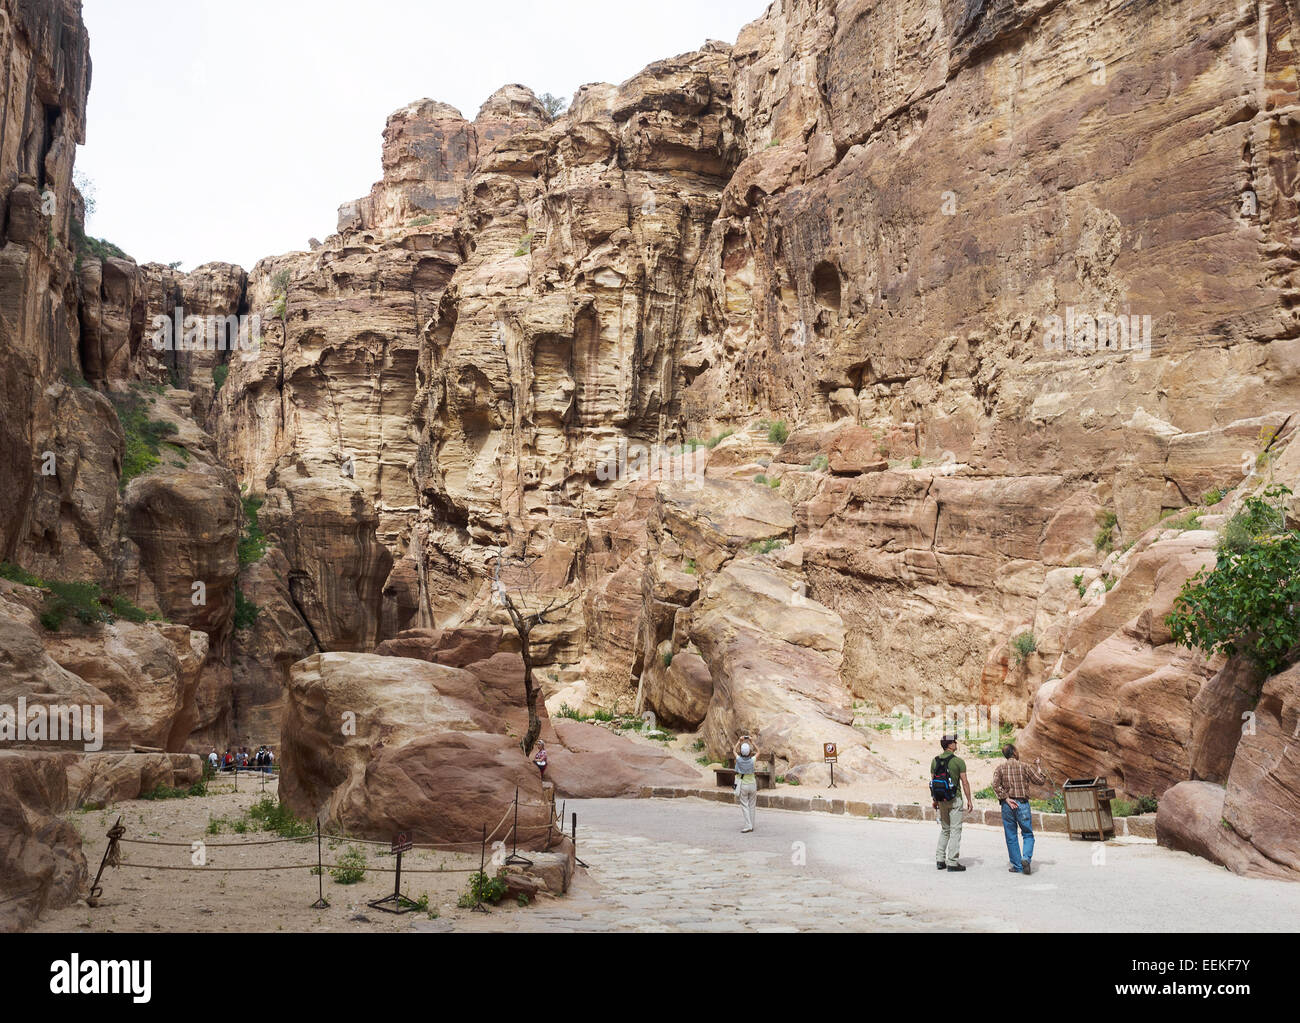 View along the Siq on the way to Petra, Jordan Stock Photo